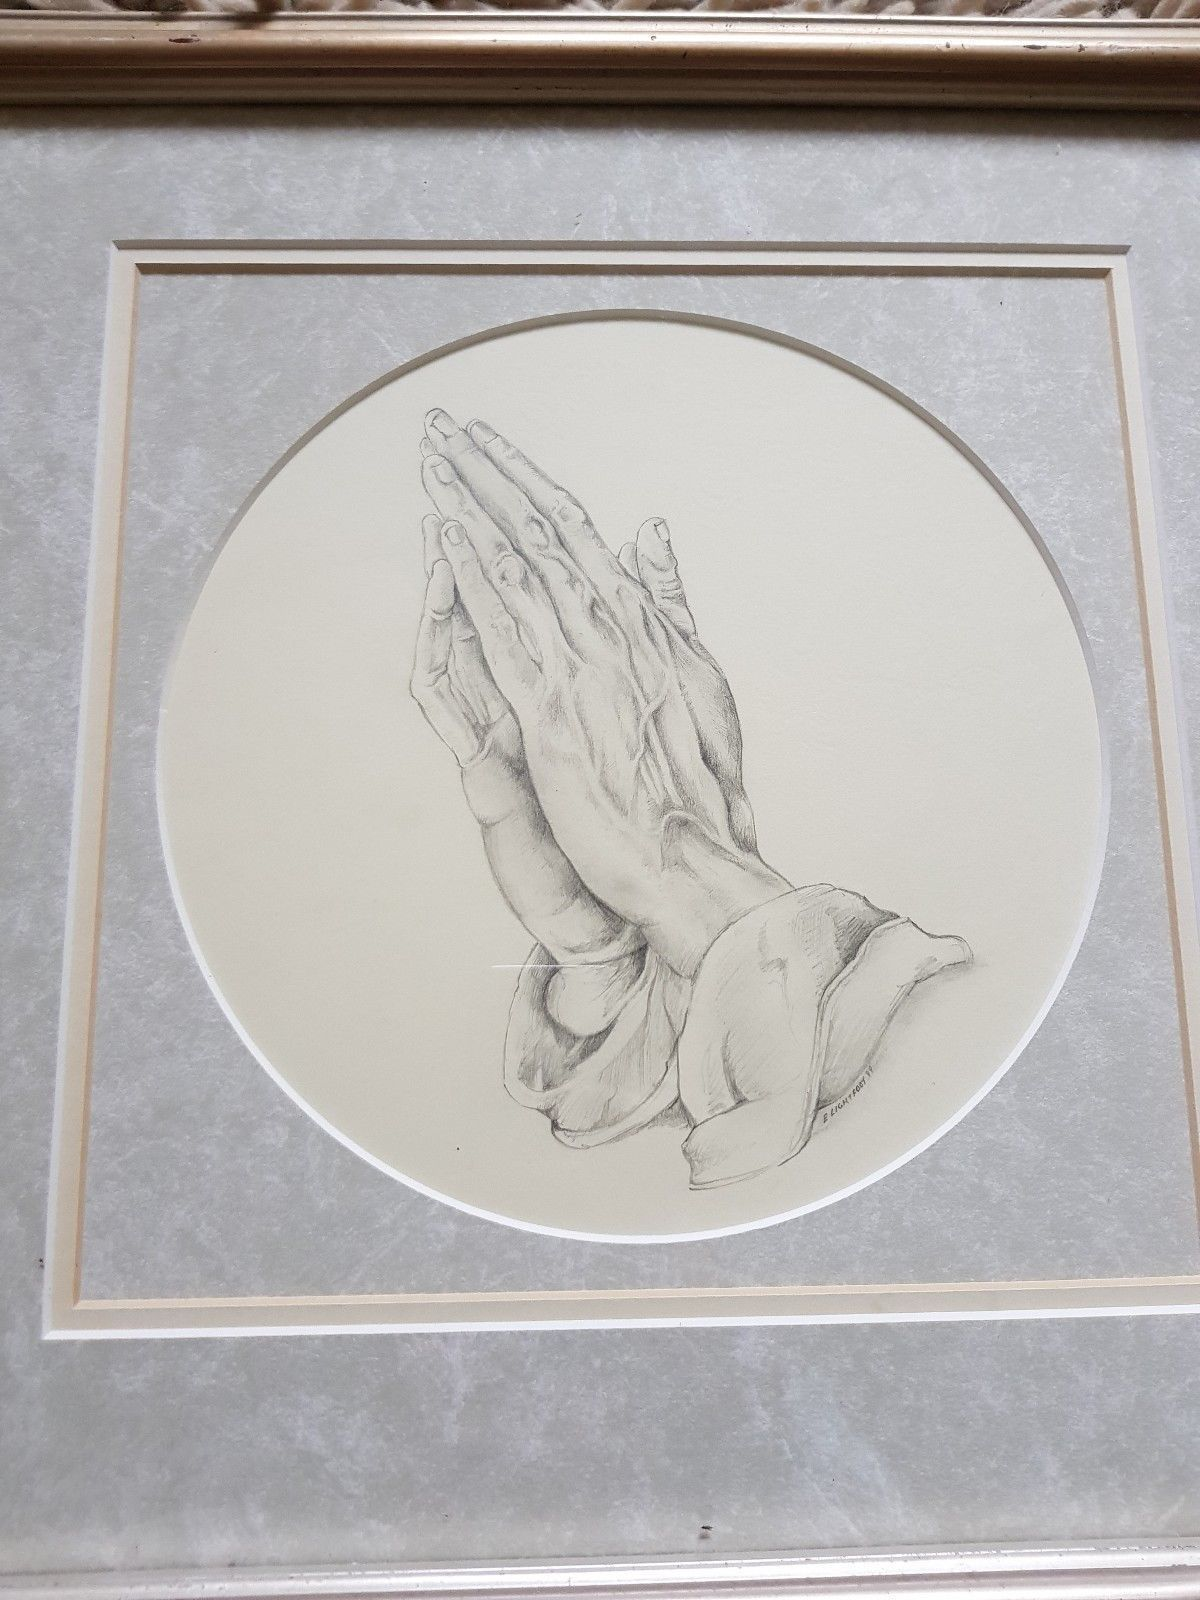 Contemporary signed e lightfoot dated 99 pencil drawing praying hands religious